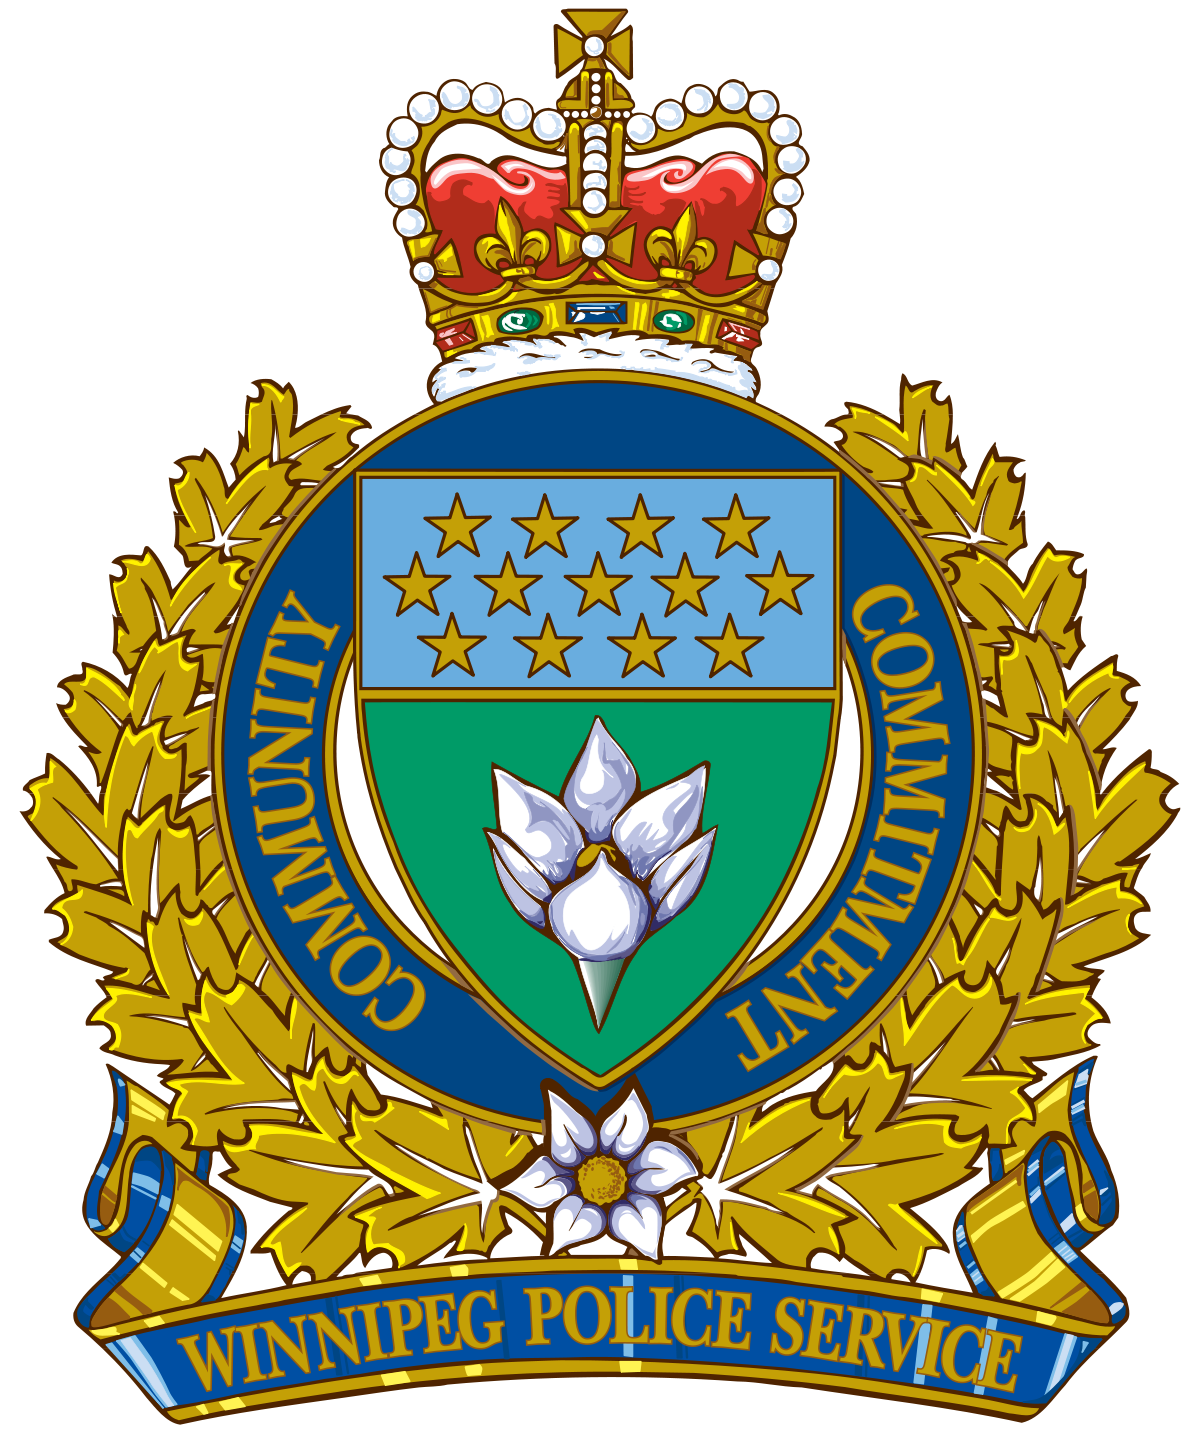 Winnipeg police service wikipedia. Deputy car clipart